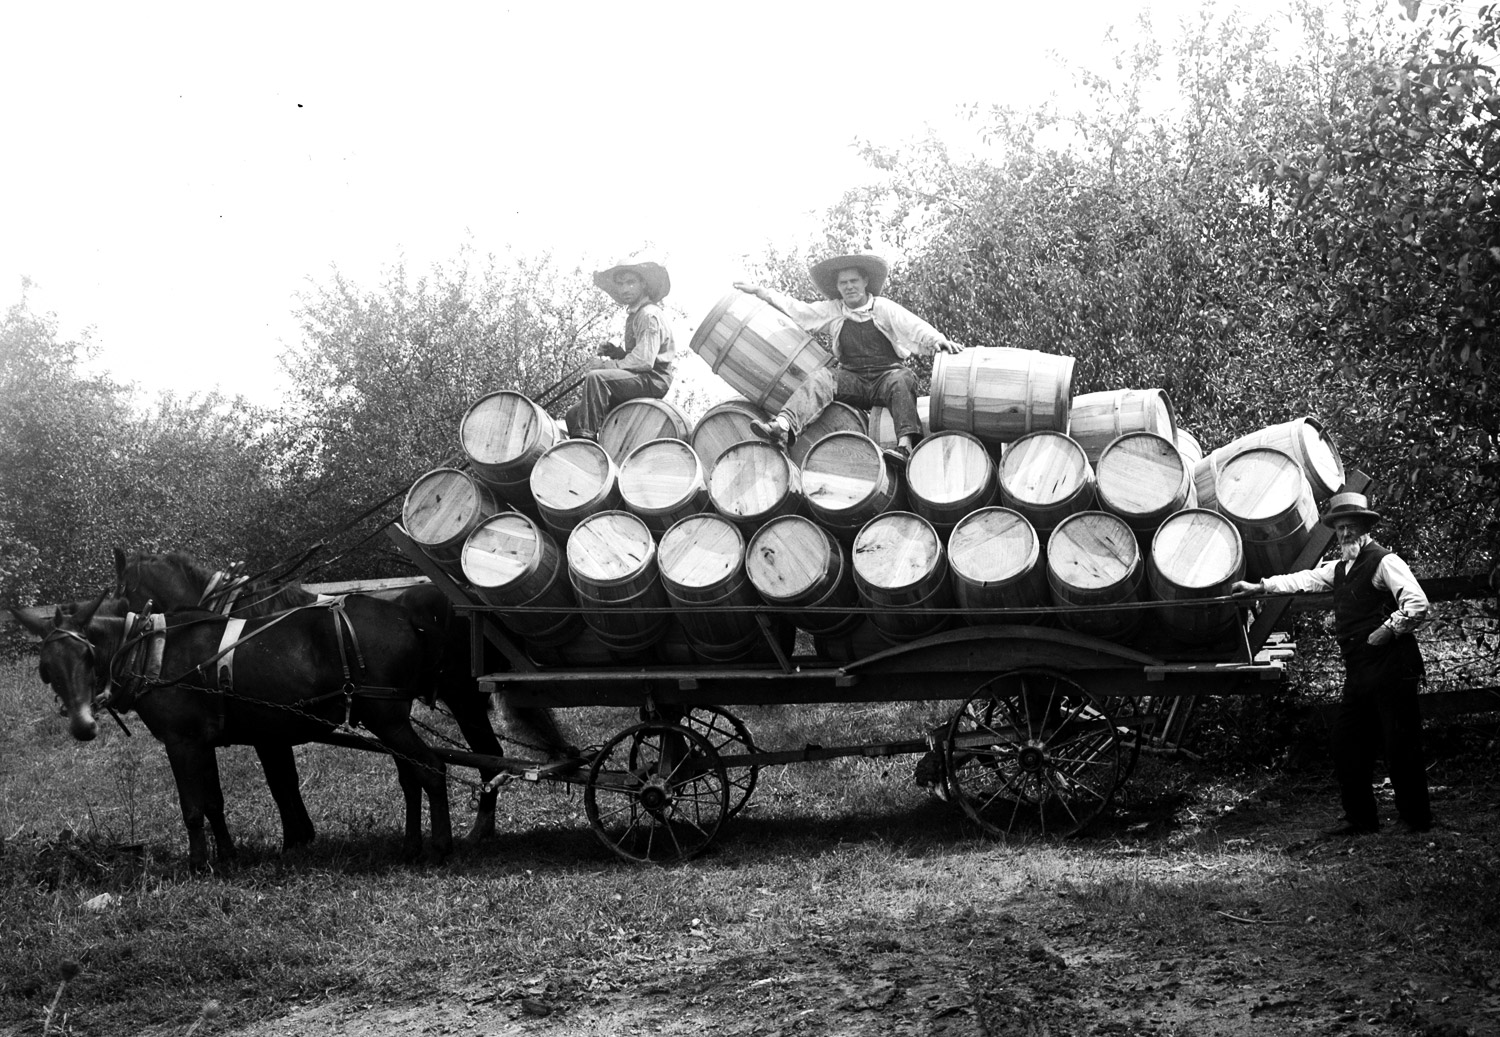 Wagon load of apple barrels in an Eastern KY orchard. Historic black and white photo.